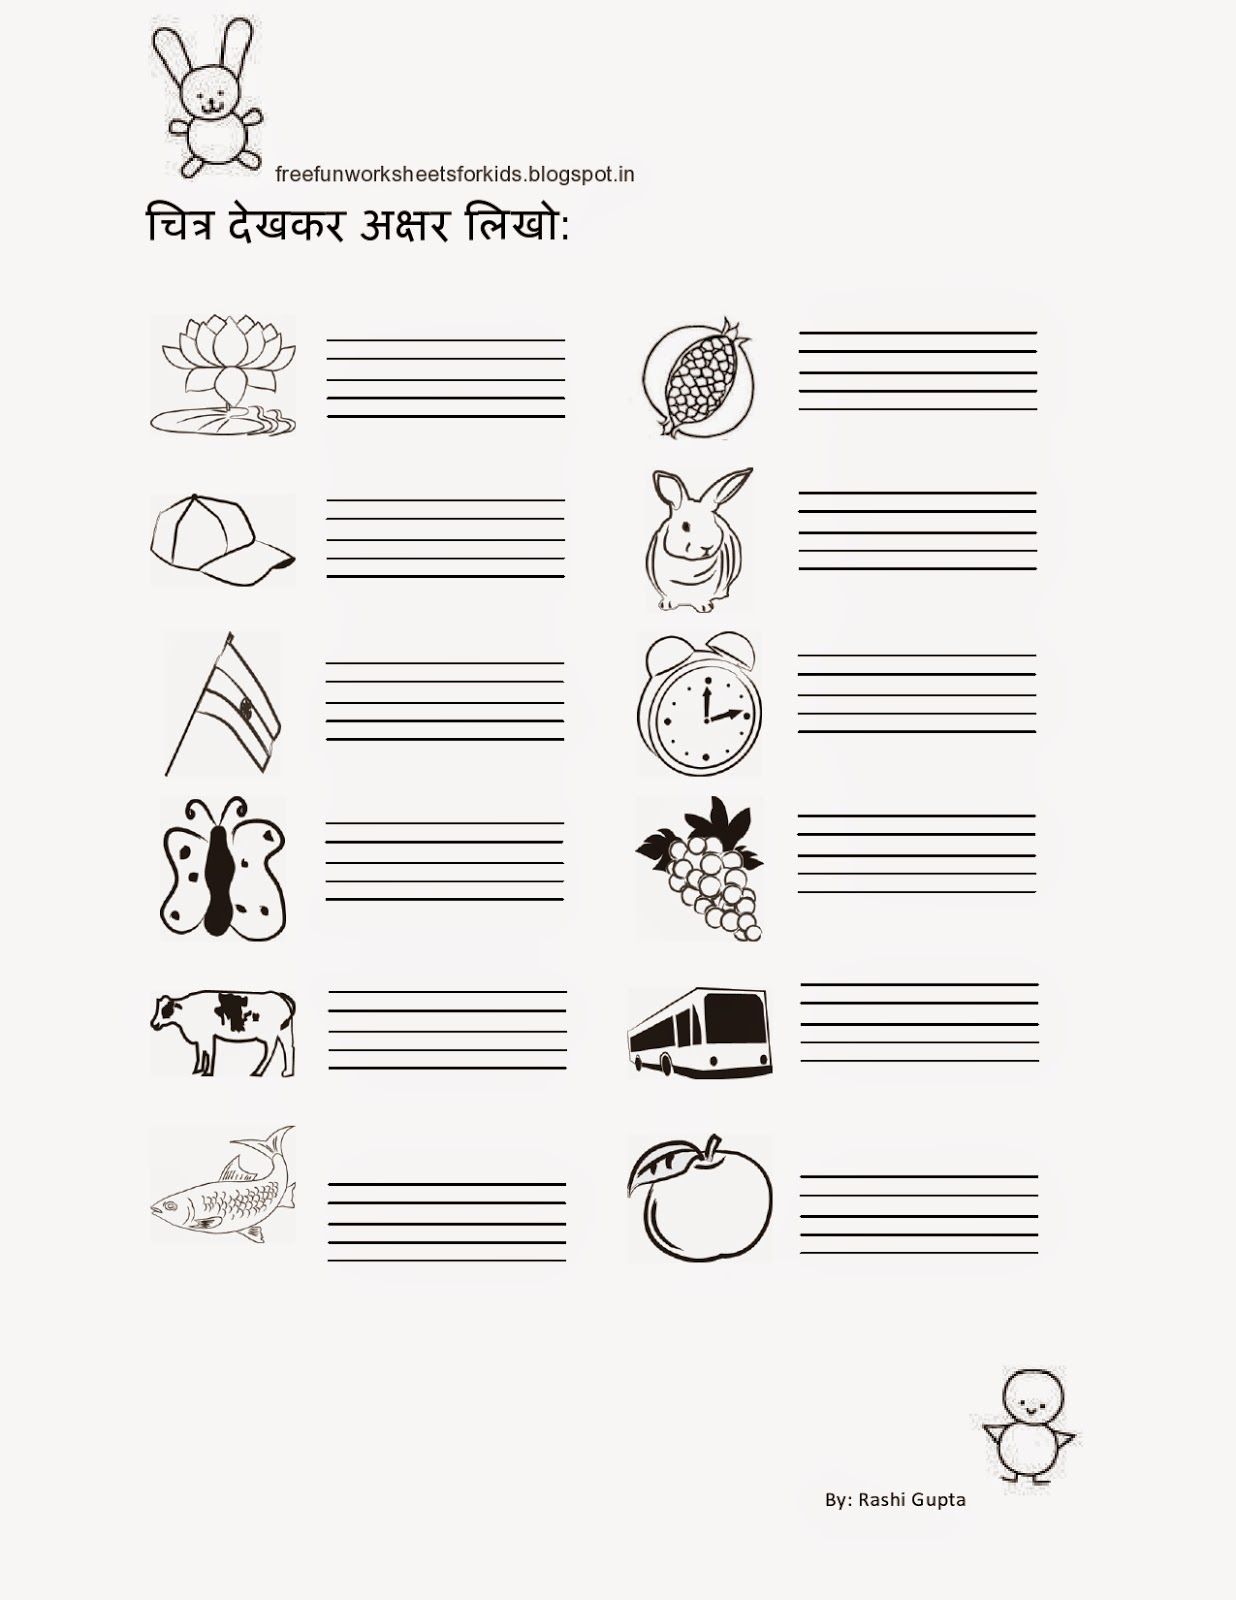 hight resolution of Free Fun Worksheets For Kids: Free Printable Fun Hindi Worksheets for Class  KG - चित्र देखकर अक्षर लिखो